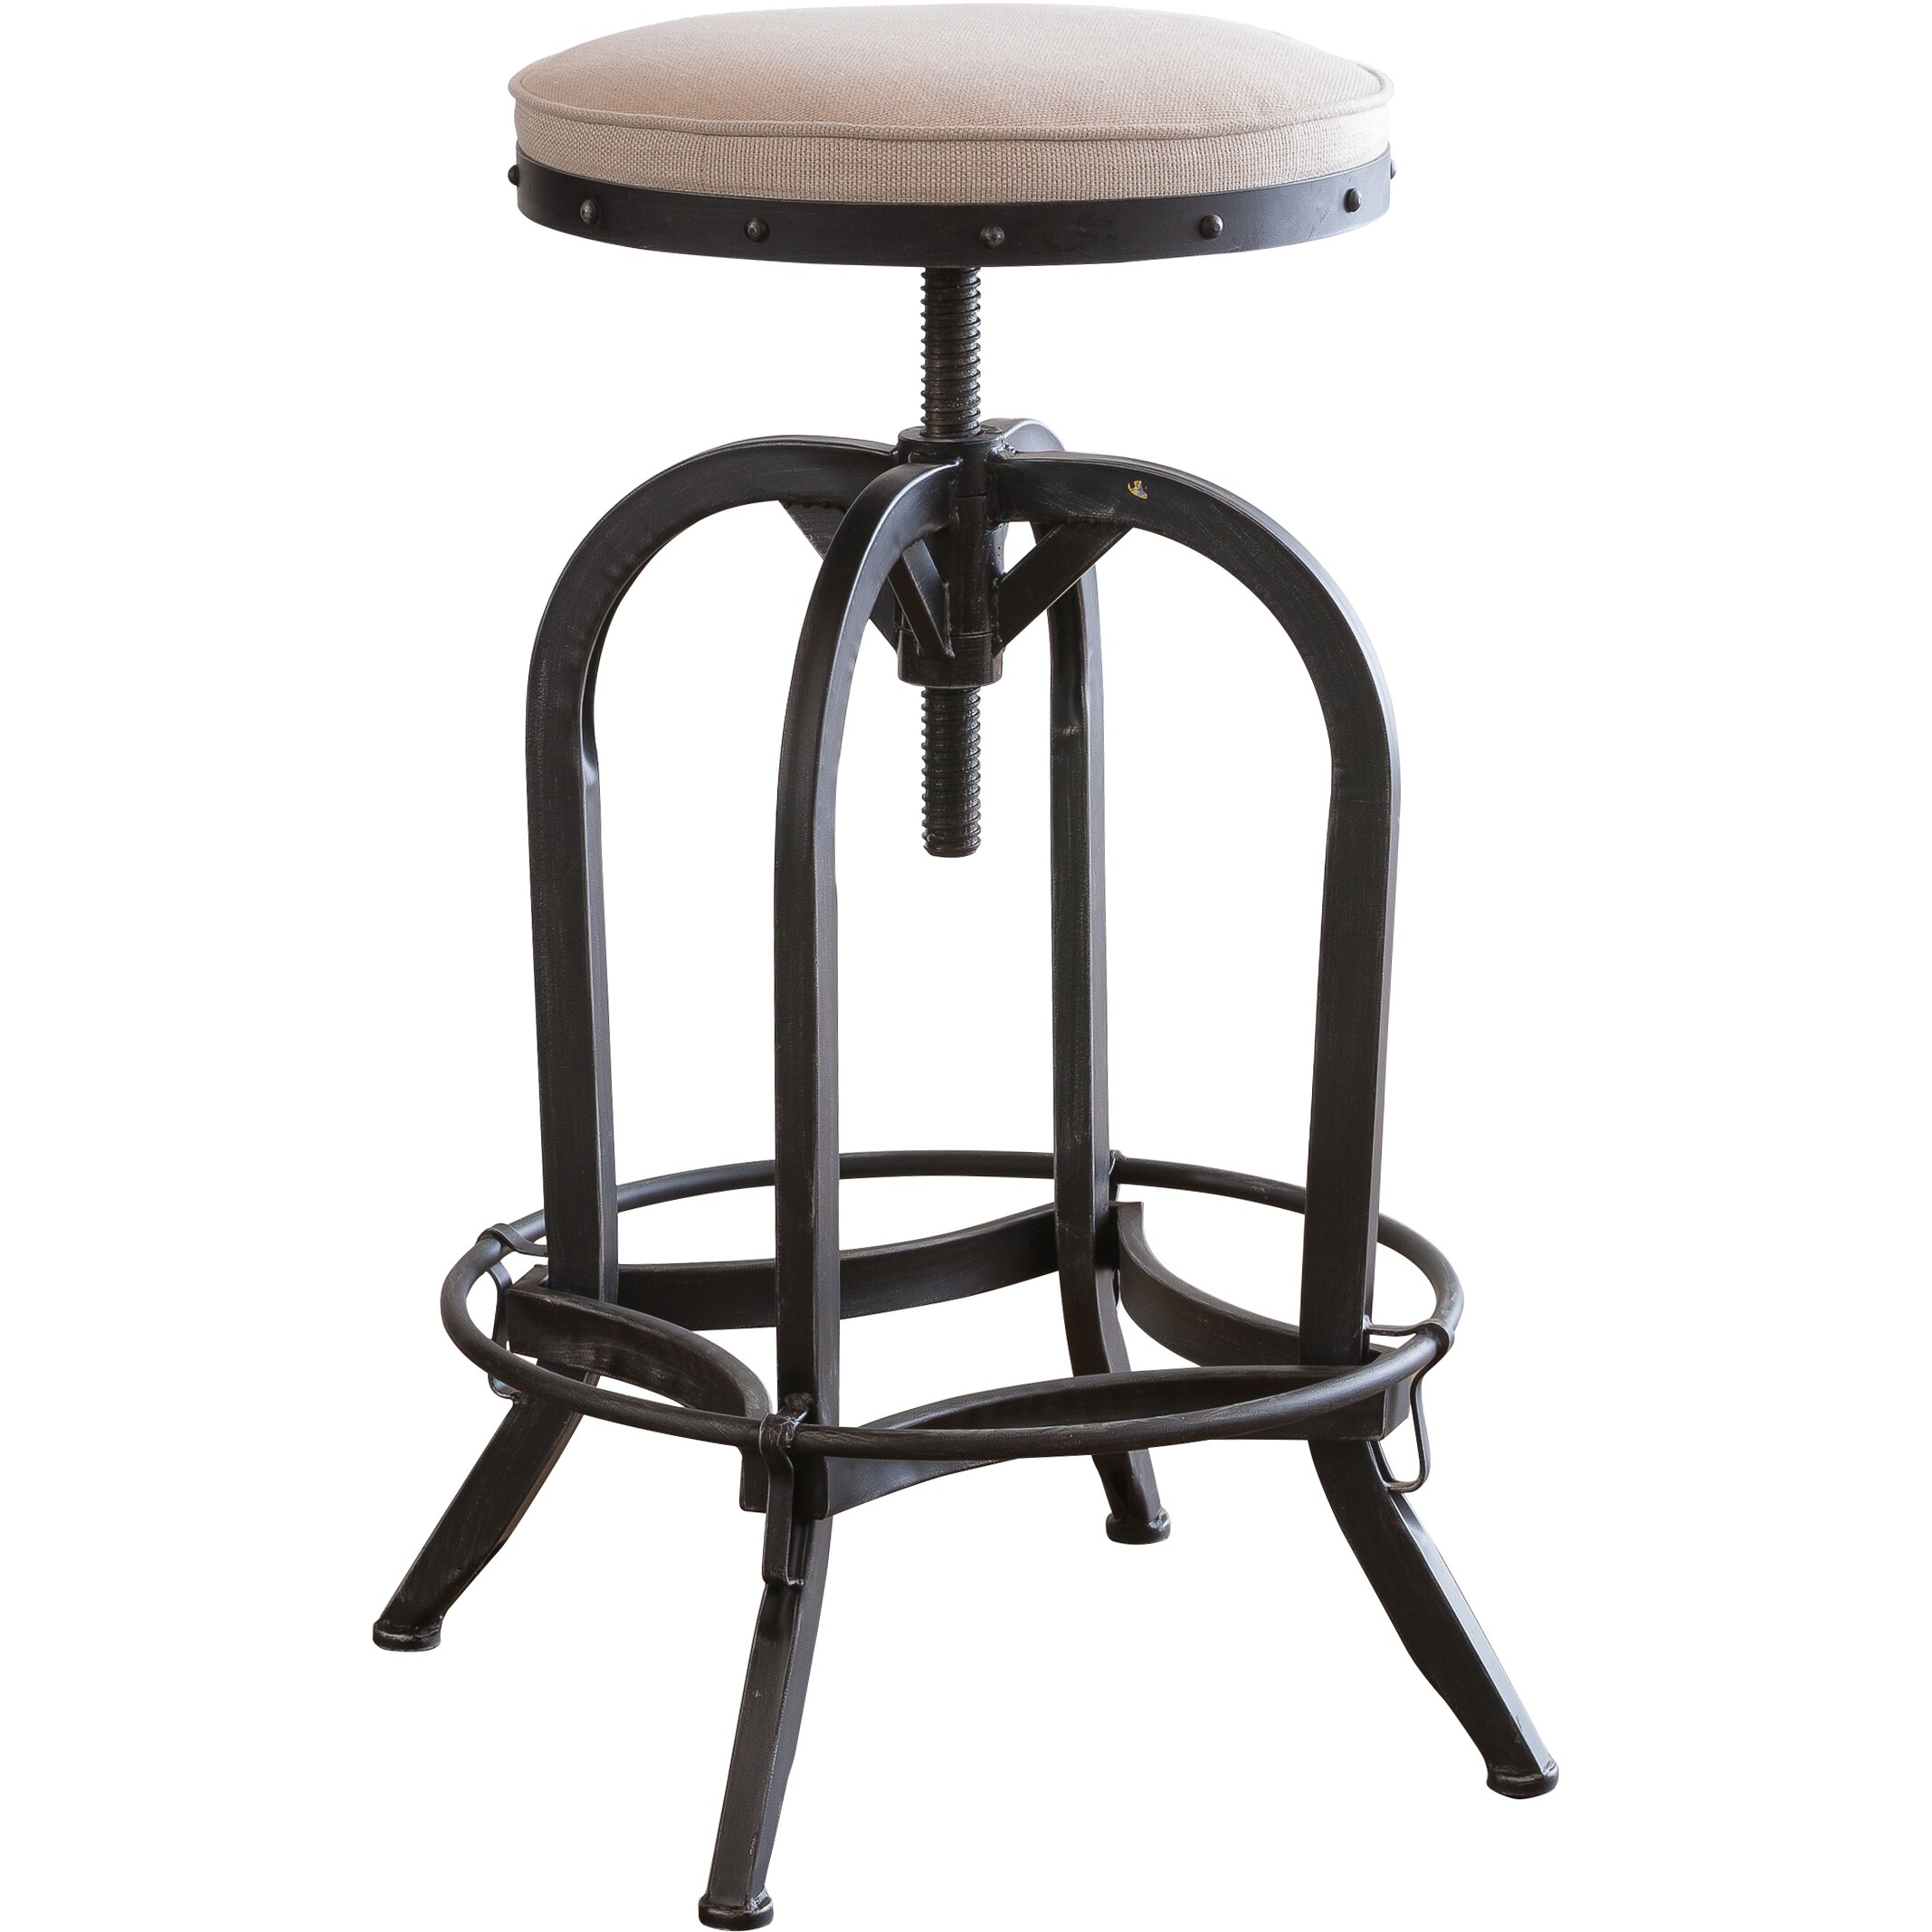 Home Loft Concepts Adjustable Height Swivel Bar Stool  : Home Loft Concepts Adjustable Height Swivel Bar Stool NFN2666 from www.wayfair.com size 2135 x 2135 jpeg 263kB